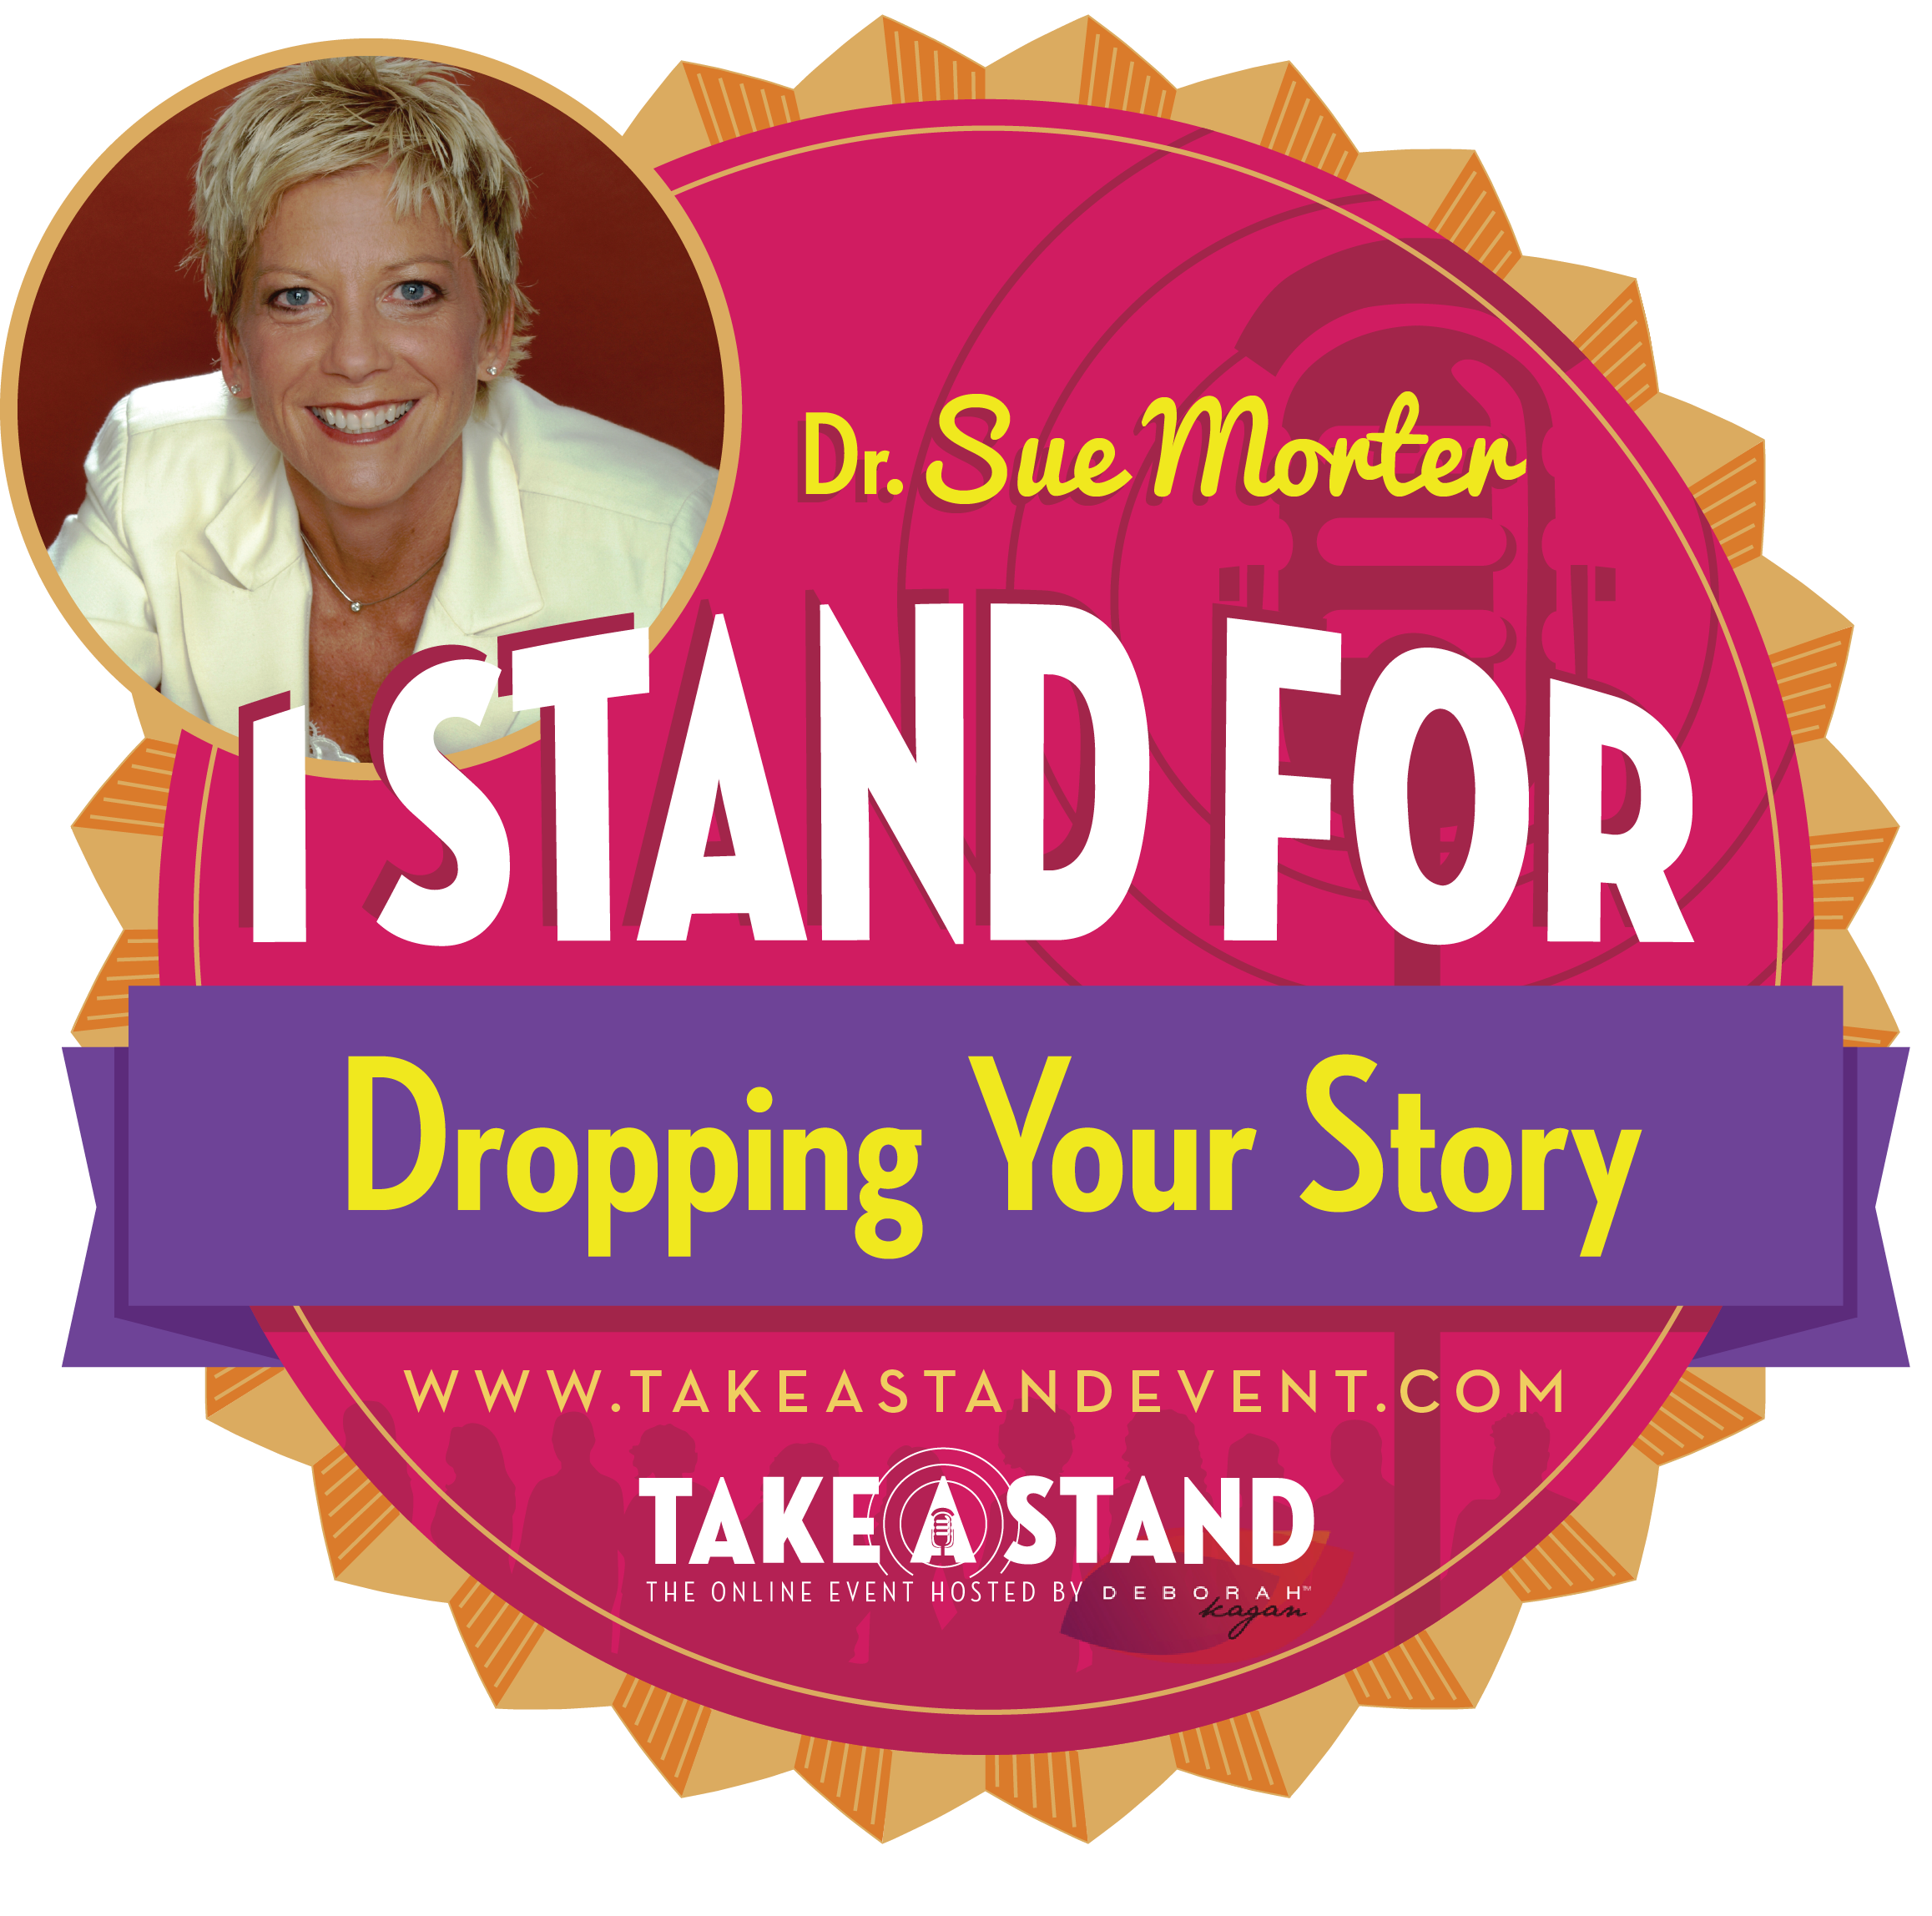 International speaker, Master of Bio-Energetic Medicine, and Quantum Field visionary, Dr. Sue redirects the flow of energy patterns in the body to activate full human potential. ##takeastandevent #domesticviolence #domesticviolenceawareness #domesticviolencesurvivors #sexualassault #rape #NCADV #NRCDV #NNEDV #1billionrising